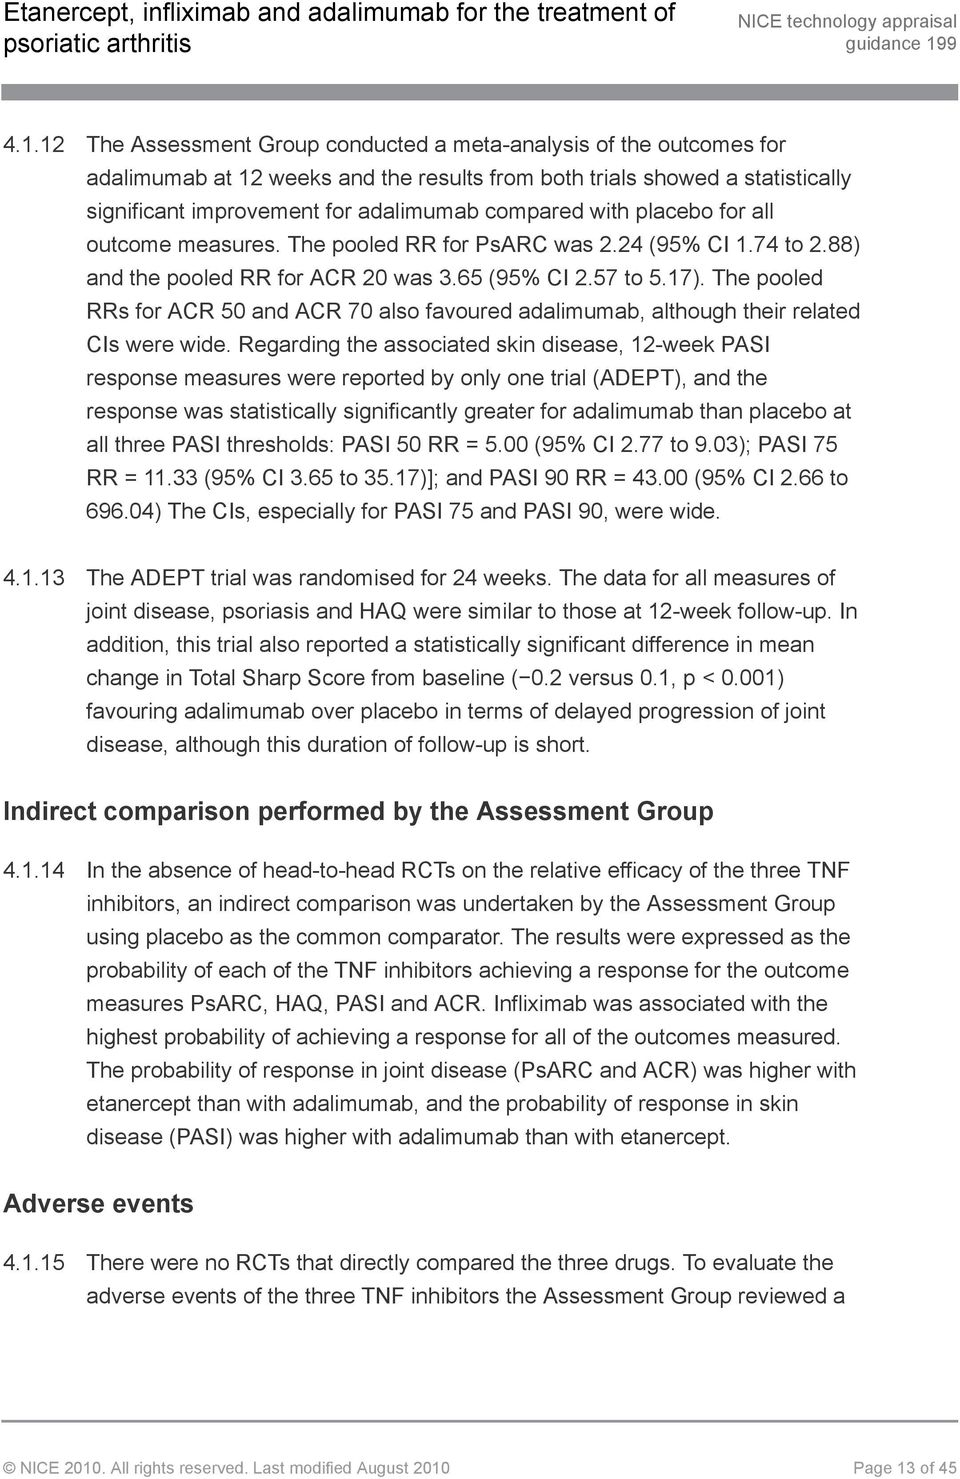 The pooled RRs for ACR 50 and ACR 70 also favoured adalimumab, although their related CIs were wide.